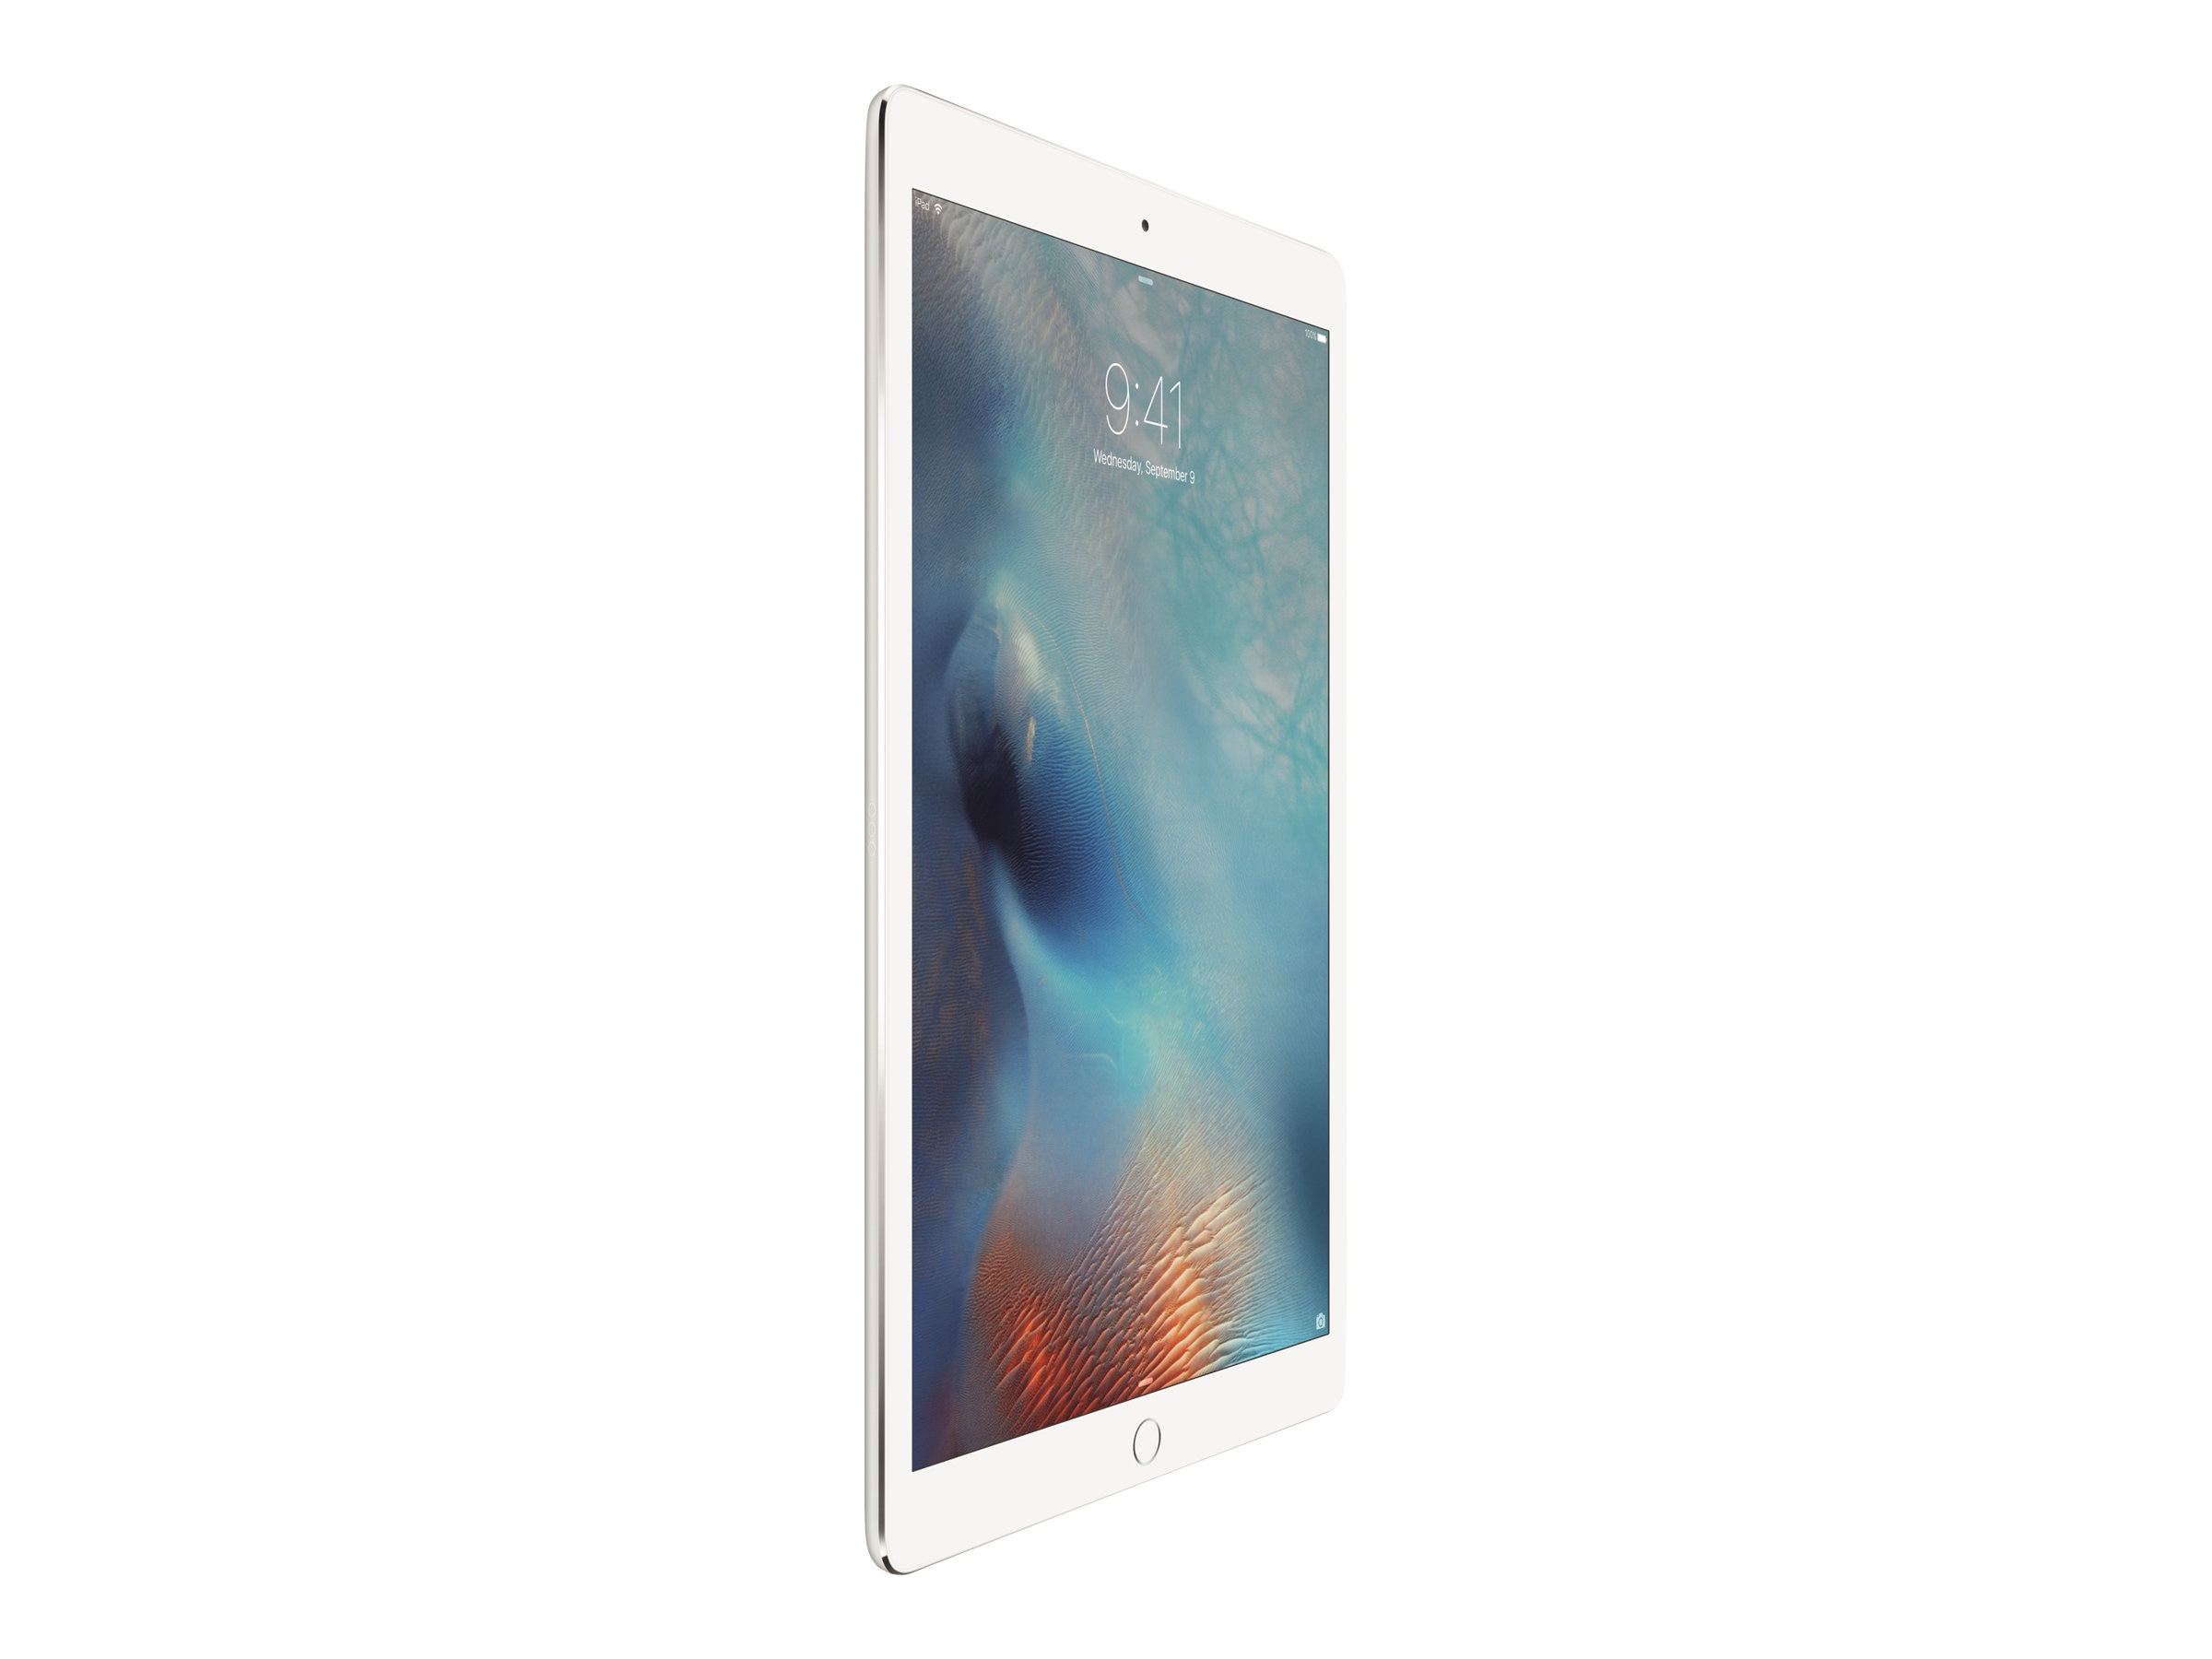 Apple iPad Pro, 128GB, Wi-Fi+Cellular, Silver (Apple SIM), ML3N2LL/A, 30768854, Tablets - iPad Pro